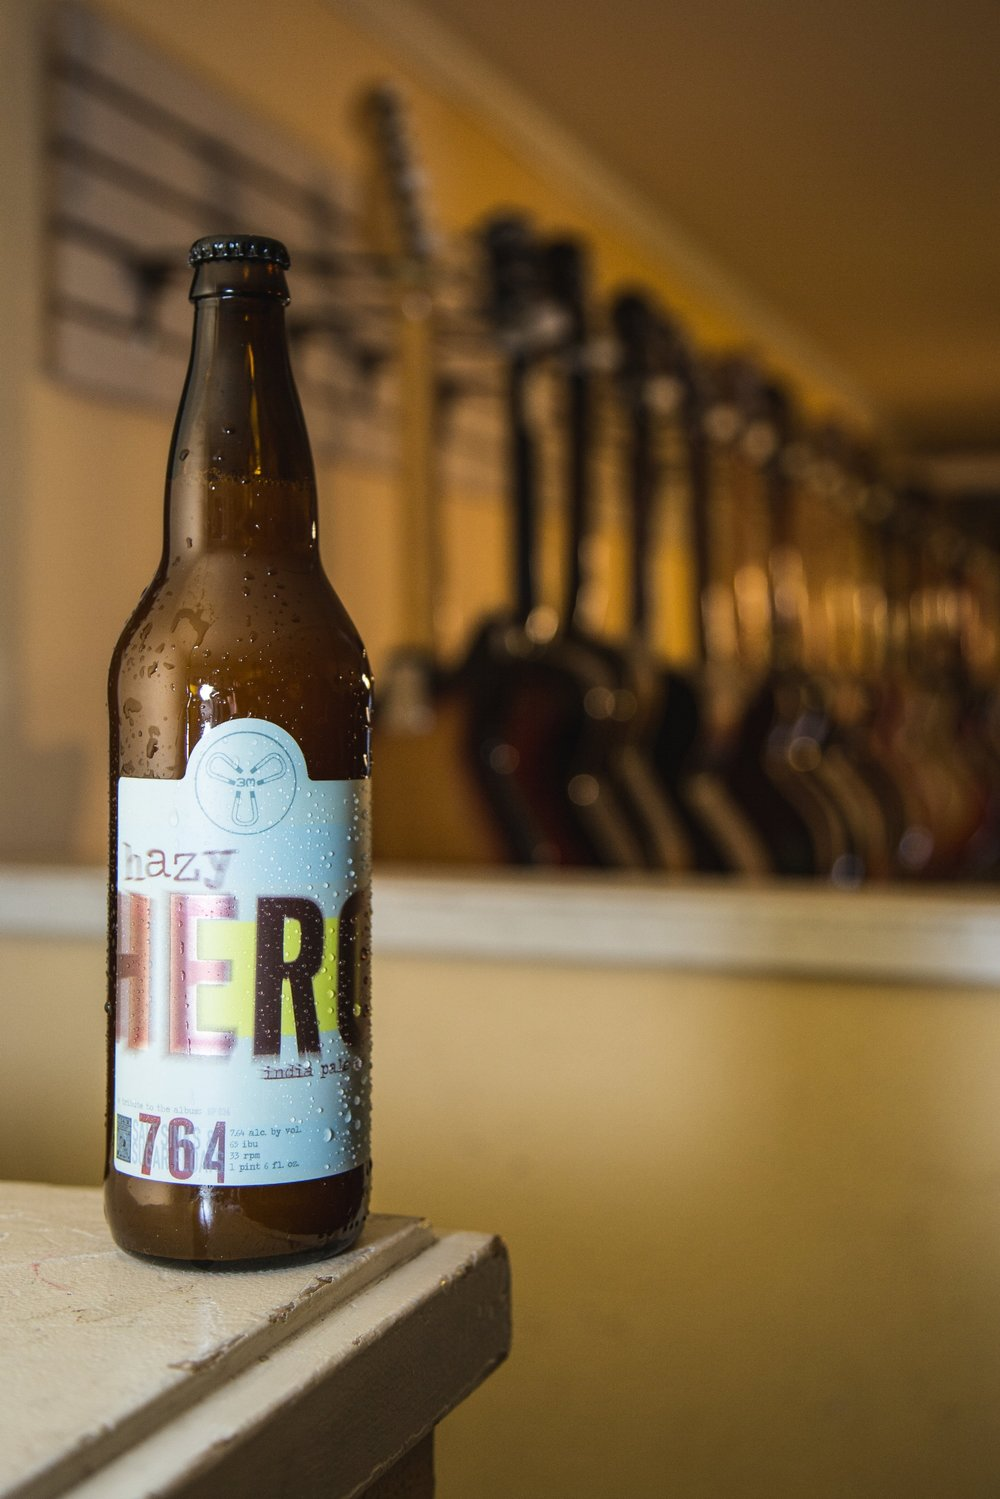 HAZY HERO IPA This hazy India pale ale was brewed in collaboration with former frontman of several 90s-era Seattle indie bands, John Atkins. It's a tribute to the debut 764-HERO album Salt Sinks and Sugar Floats, recorded 21 years ago in Olympia.